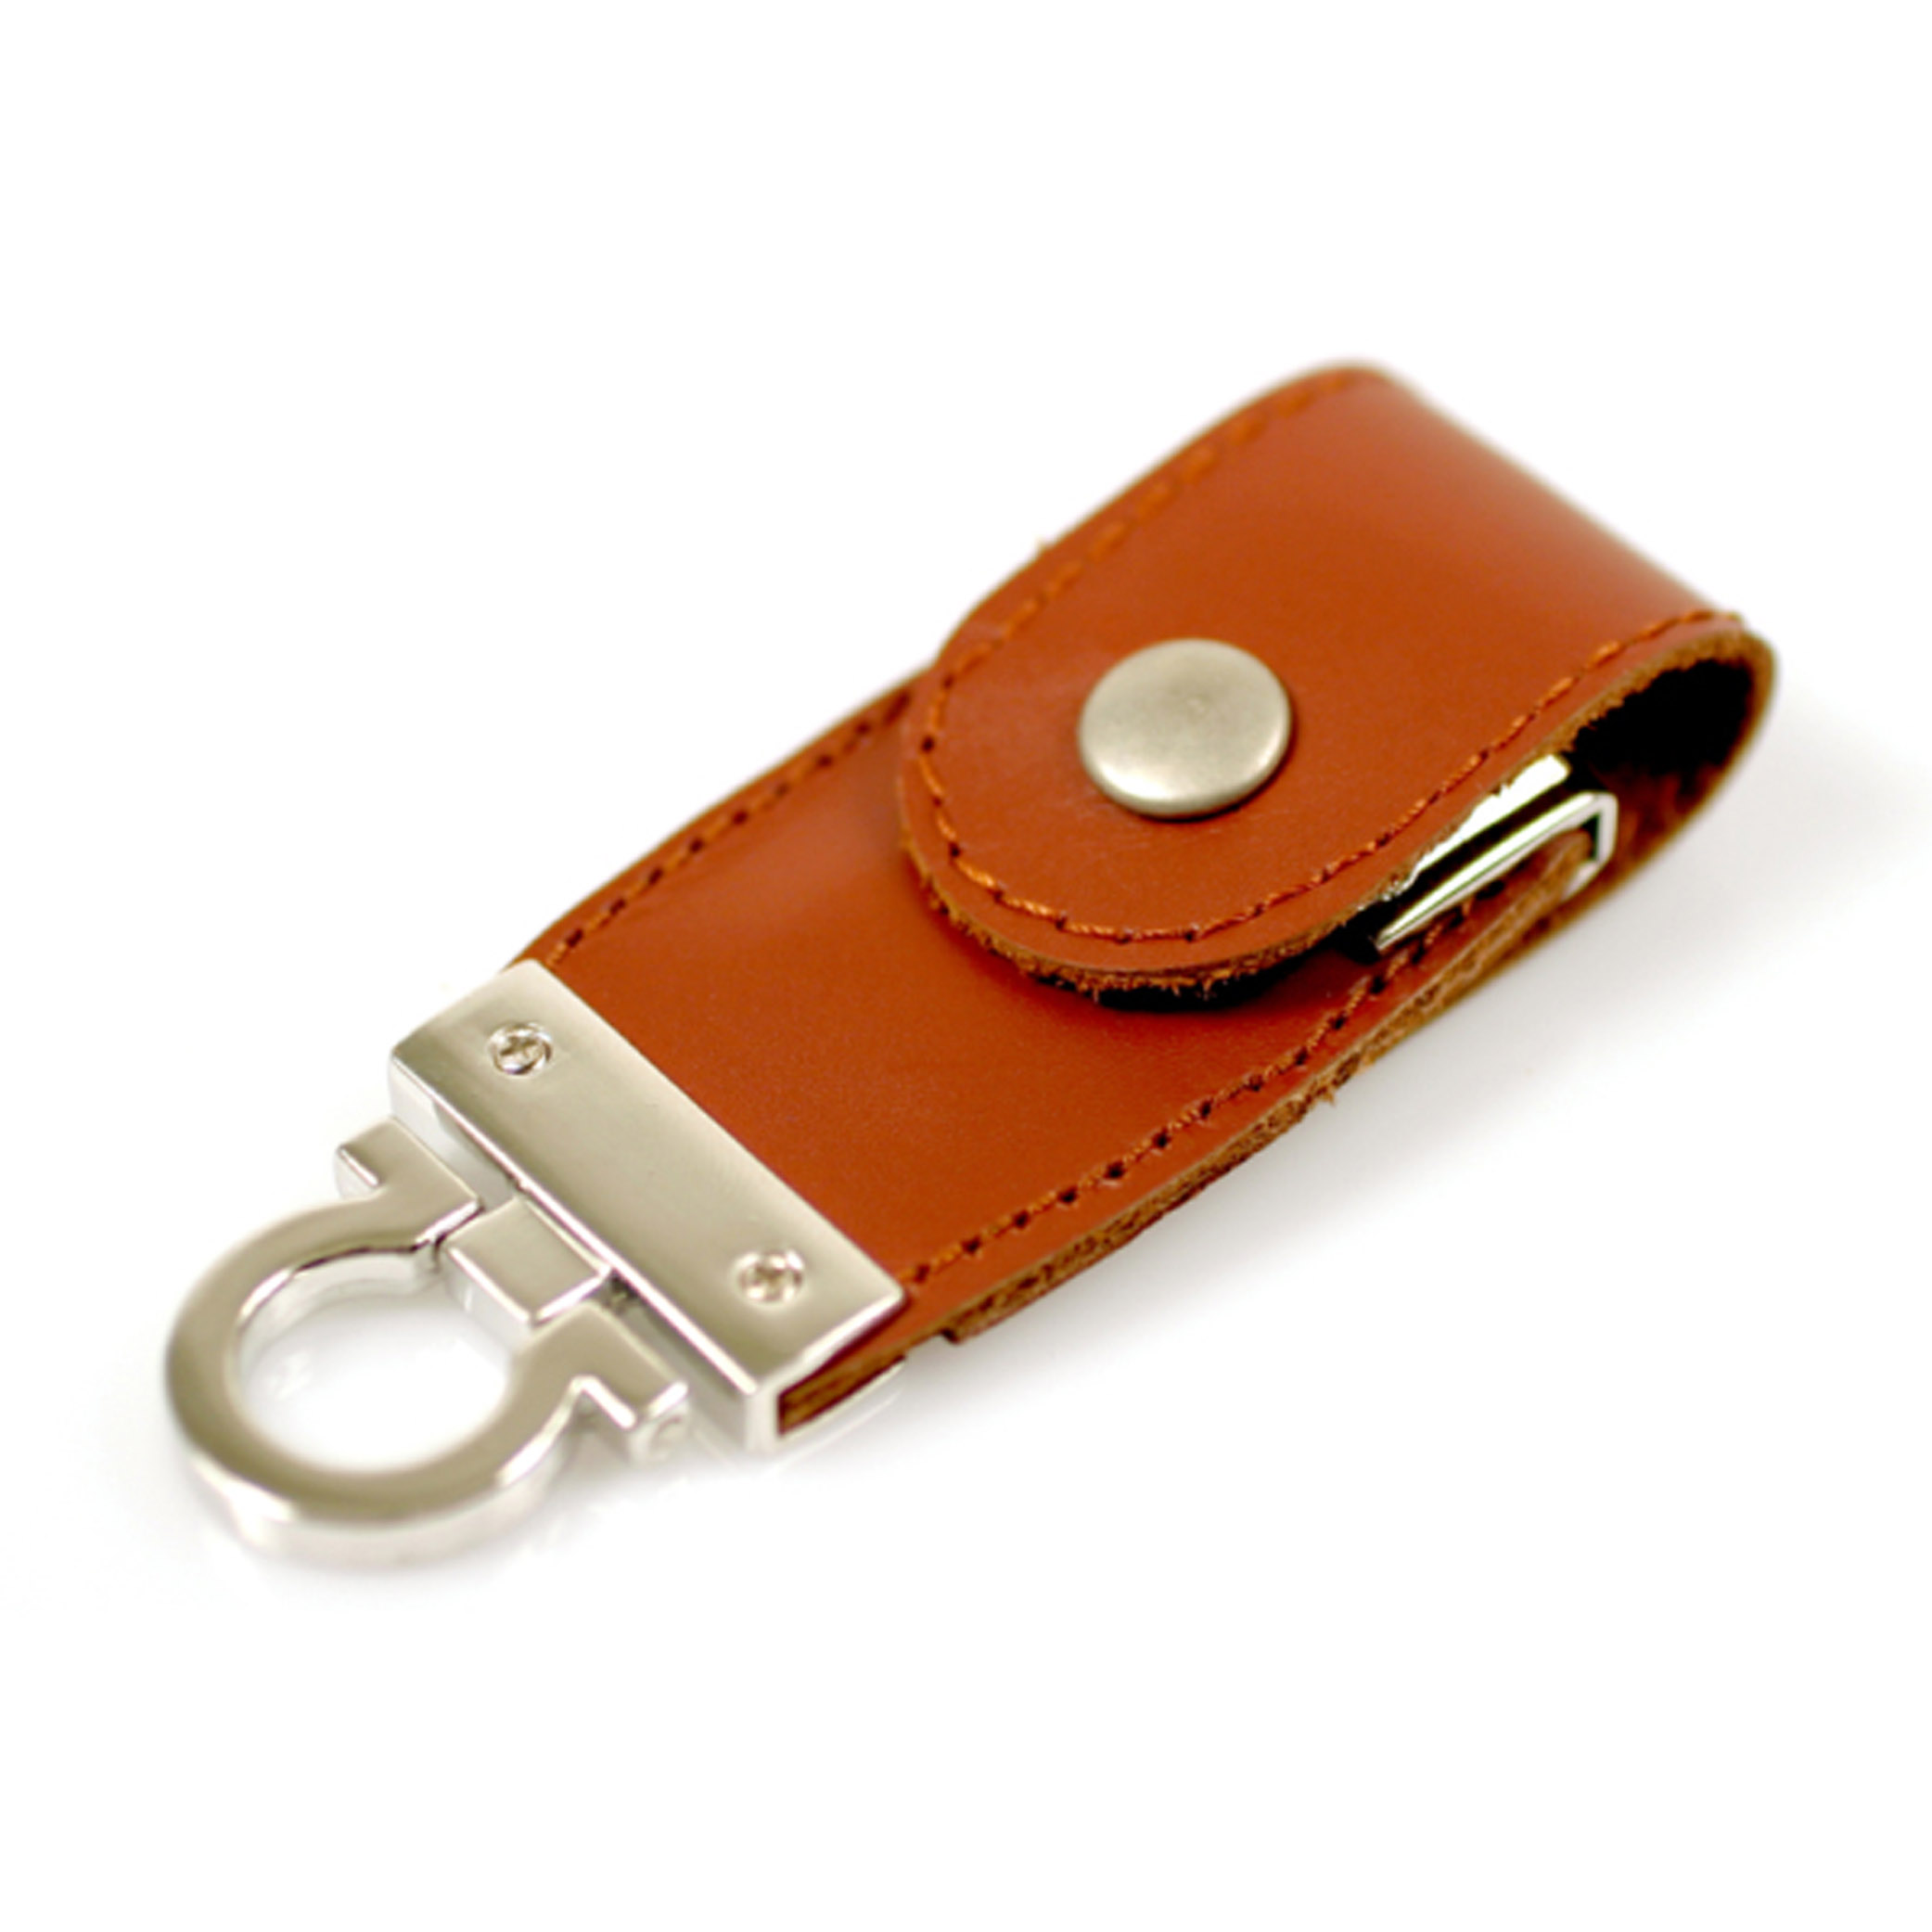 Leather USB Drive